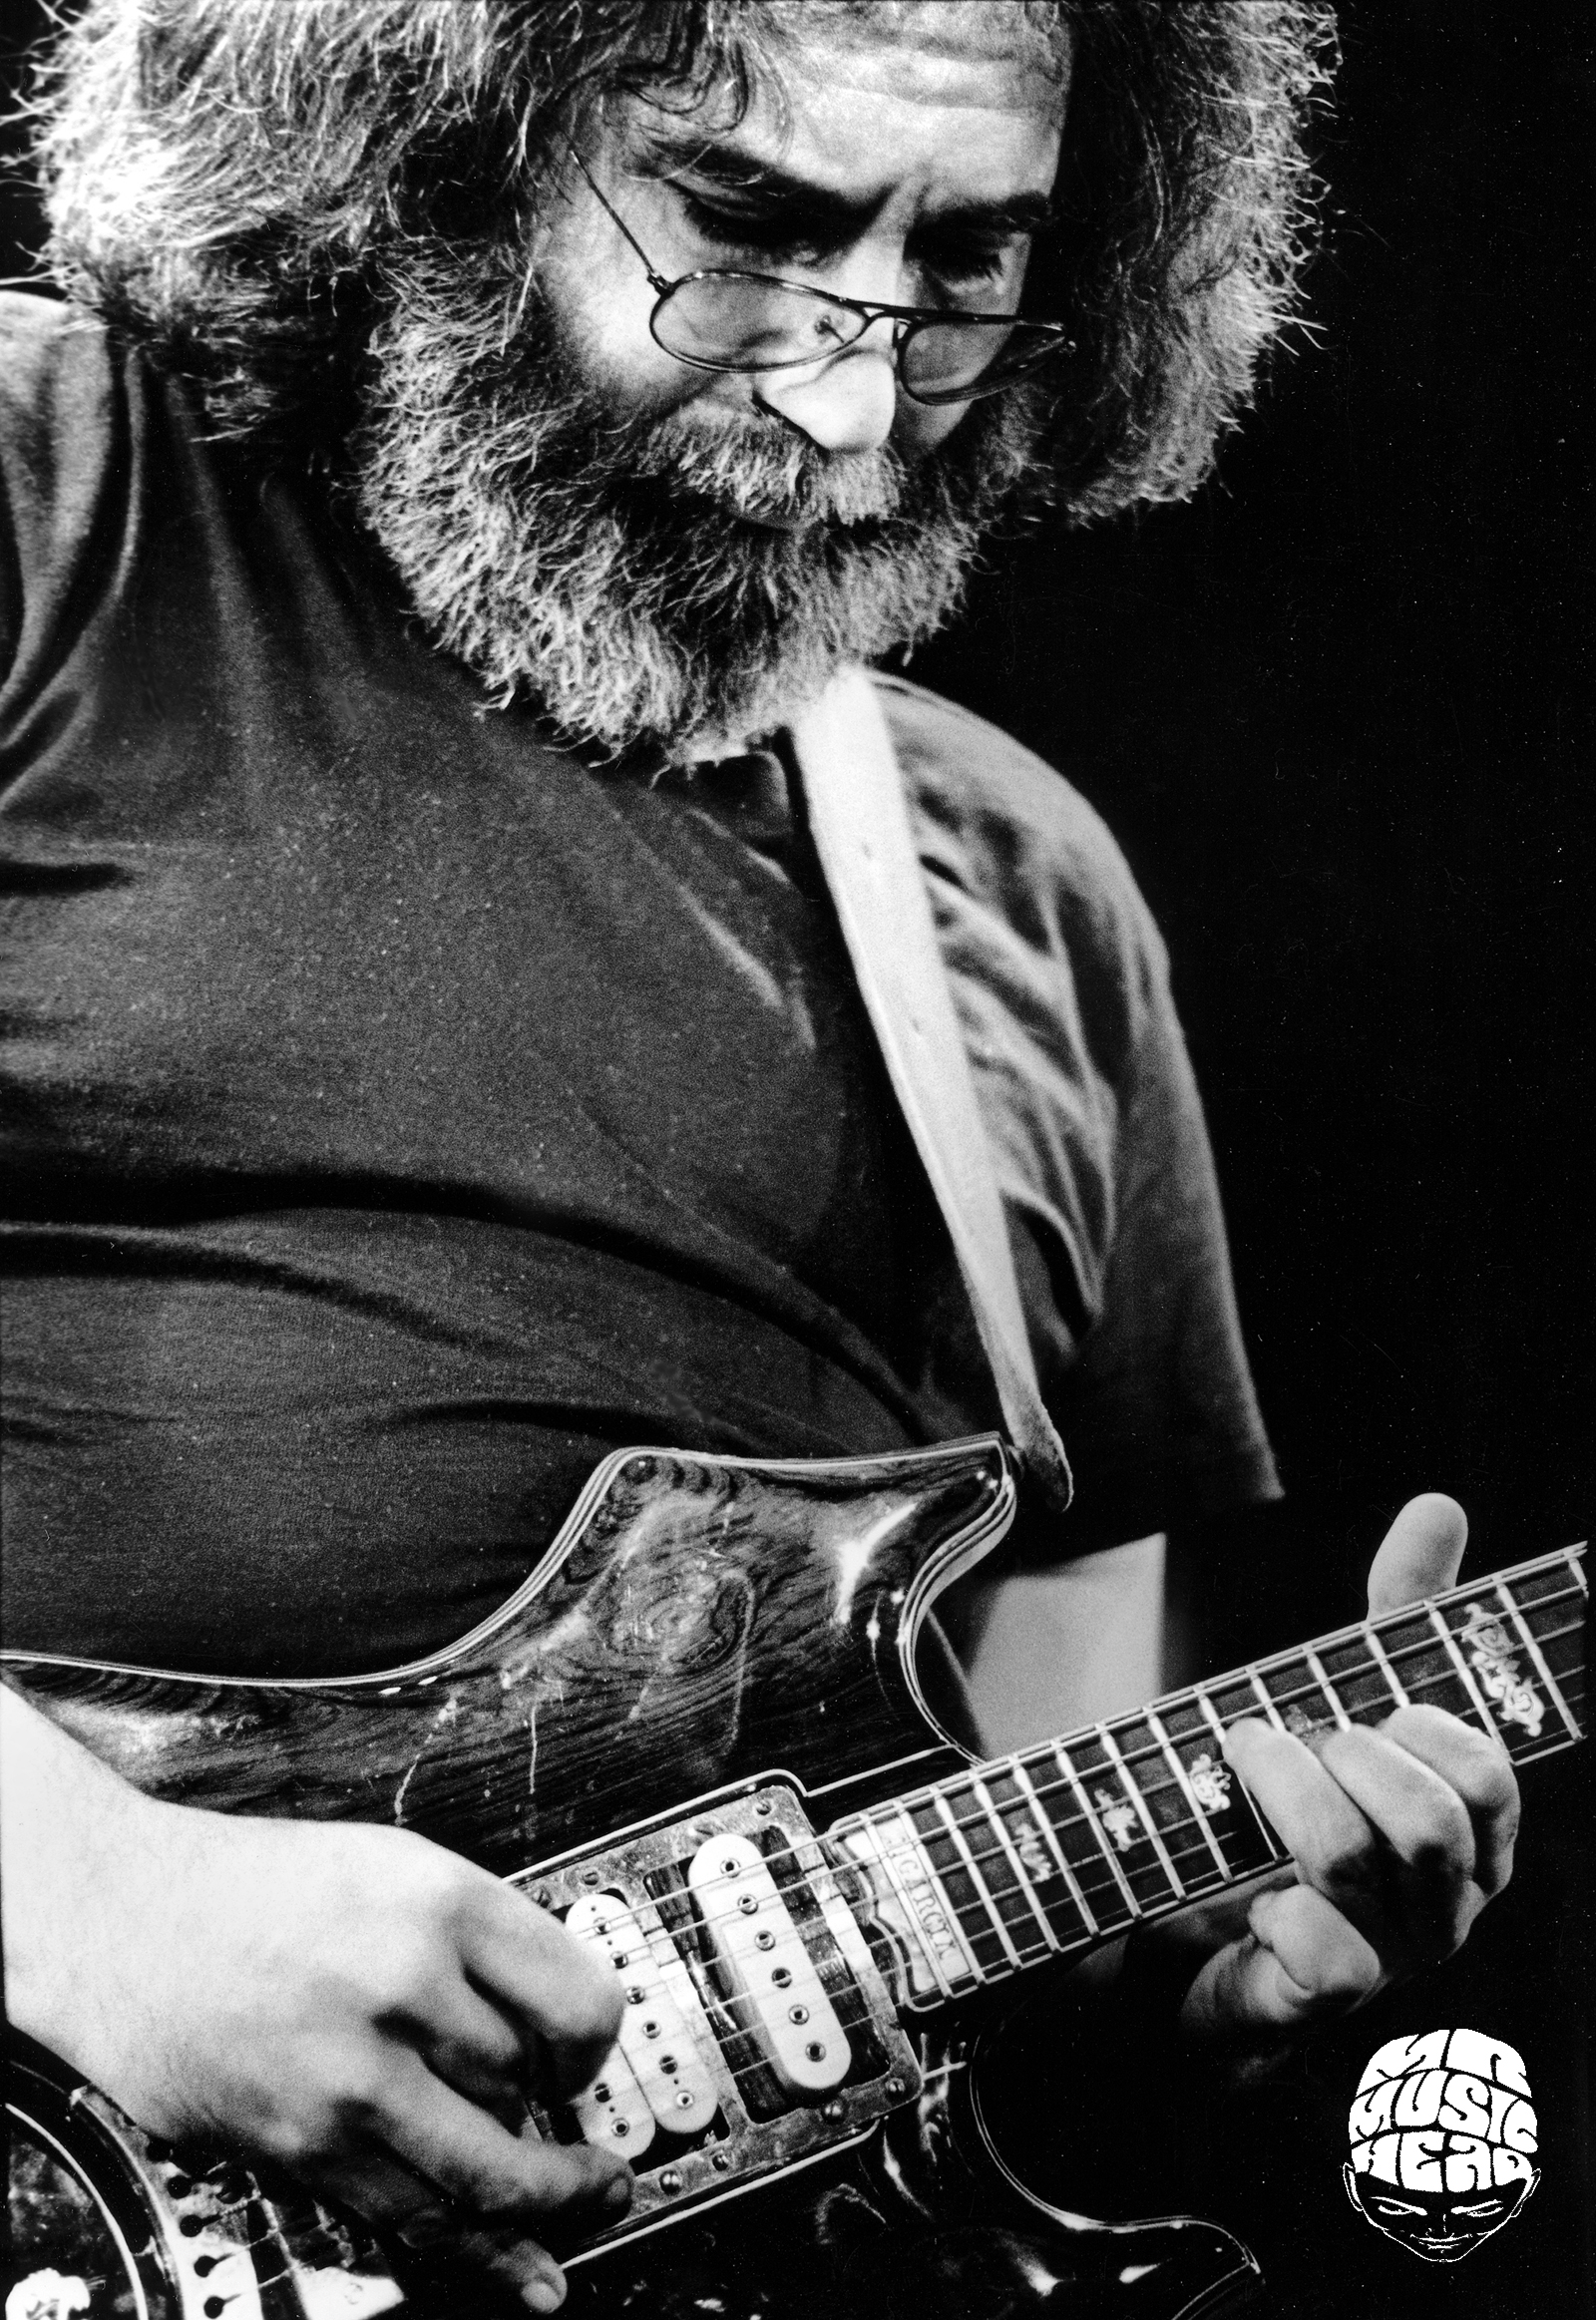 peter simon_jerry garcia.jpg